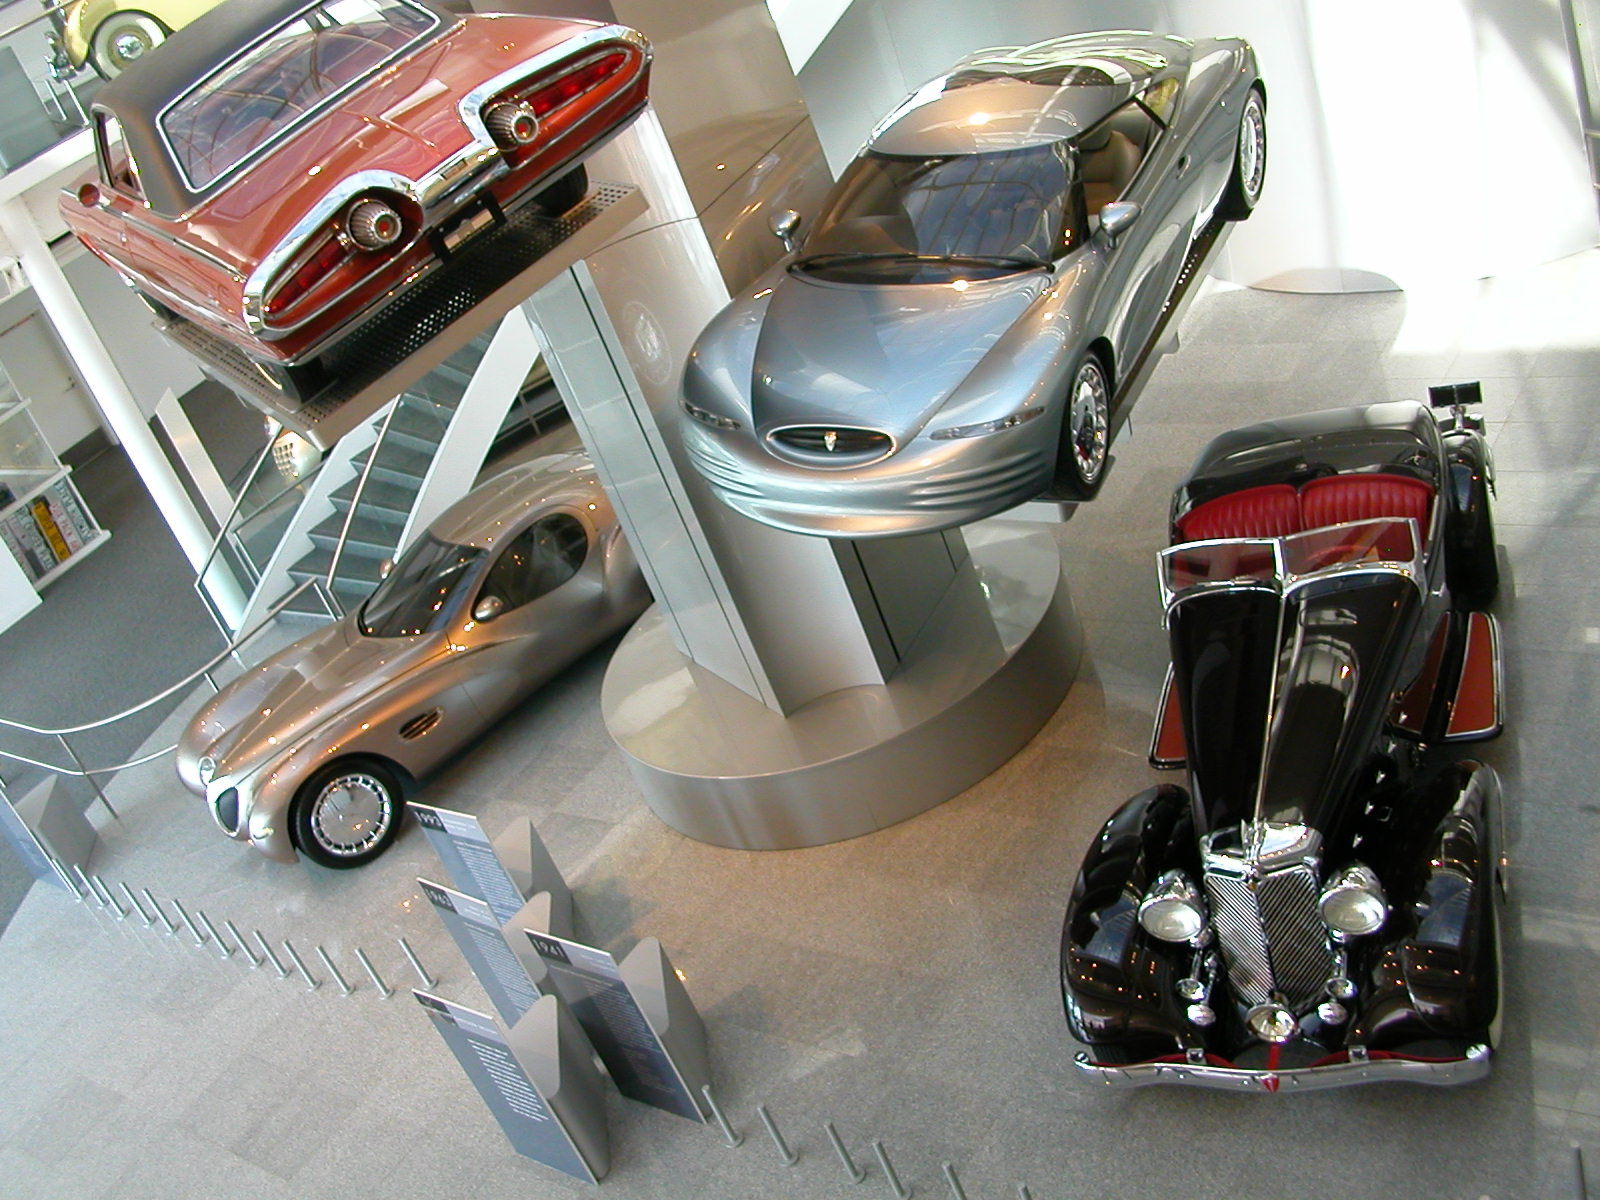 Viper, Viper assembly plant to become museum, ClassicCars.com Journal